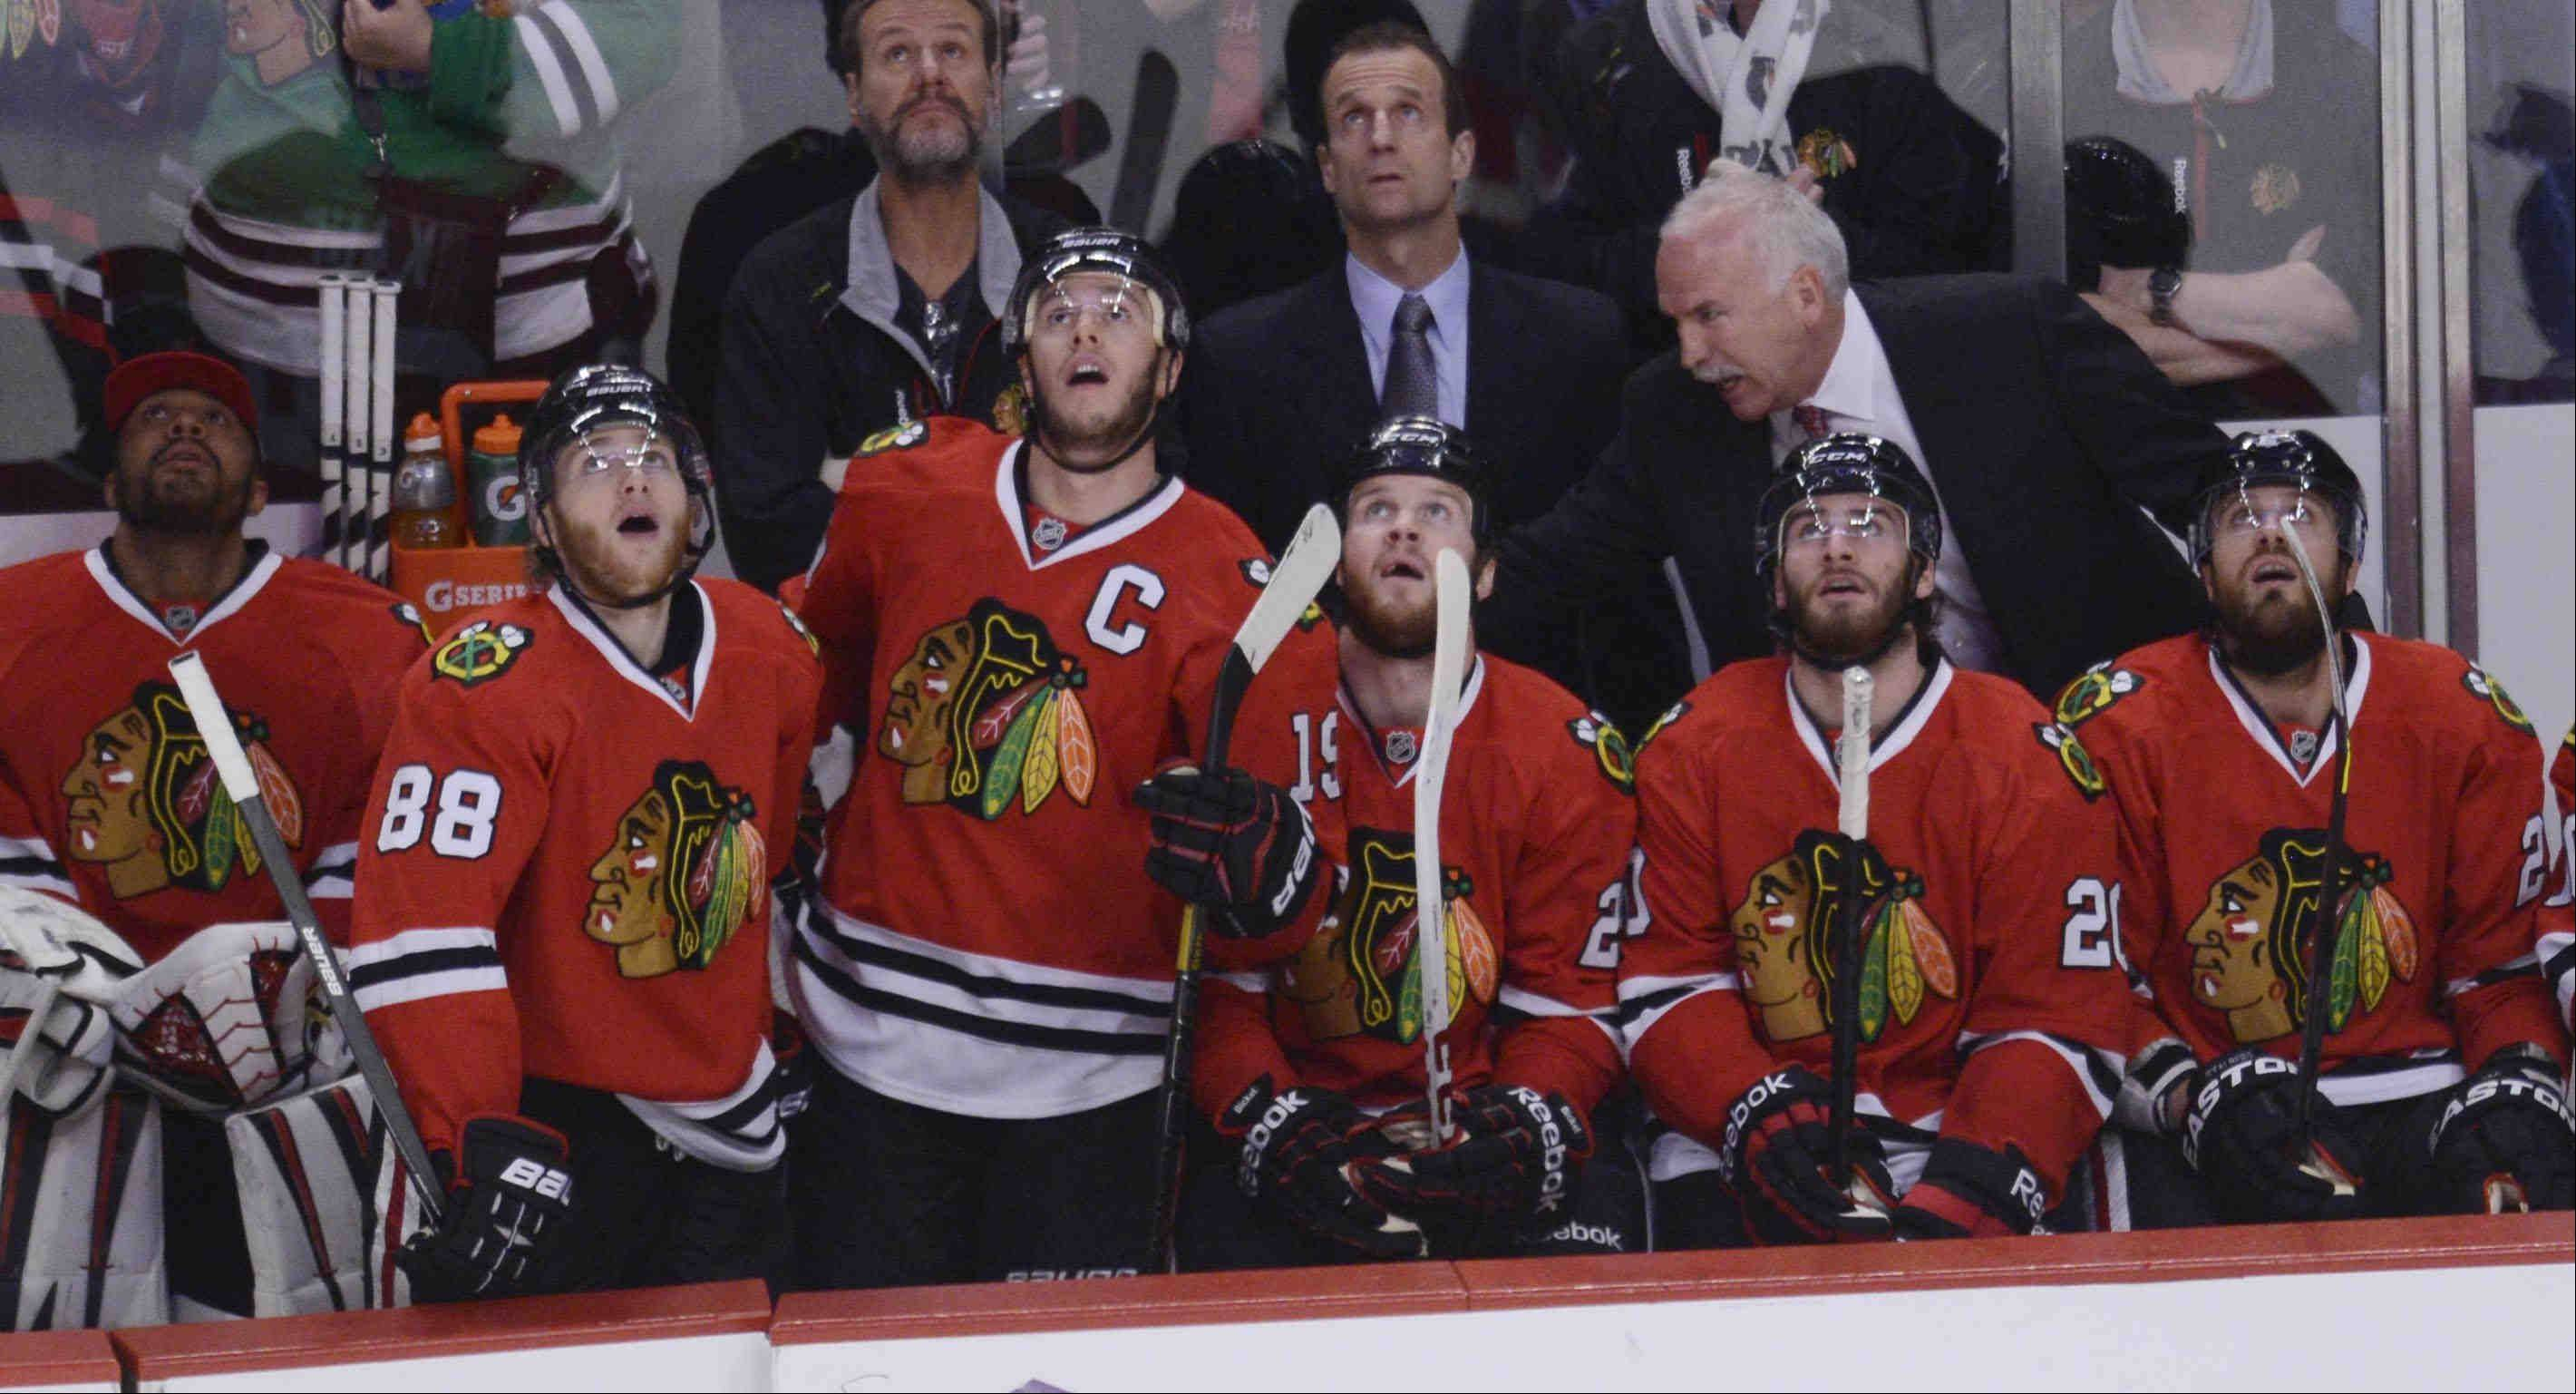 Chicago Blackhawks right wing Patrick Kane, left, and teammates watch the replay of his first-period goal against the Los Angeles Kings Saturday during the NHL Western Conference Finals Game 5 at the United Center in Chicago.